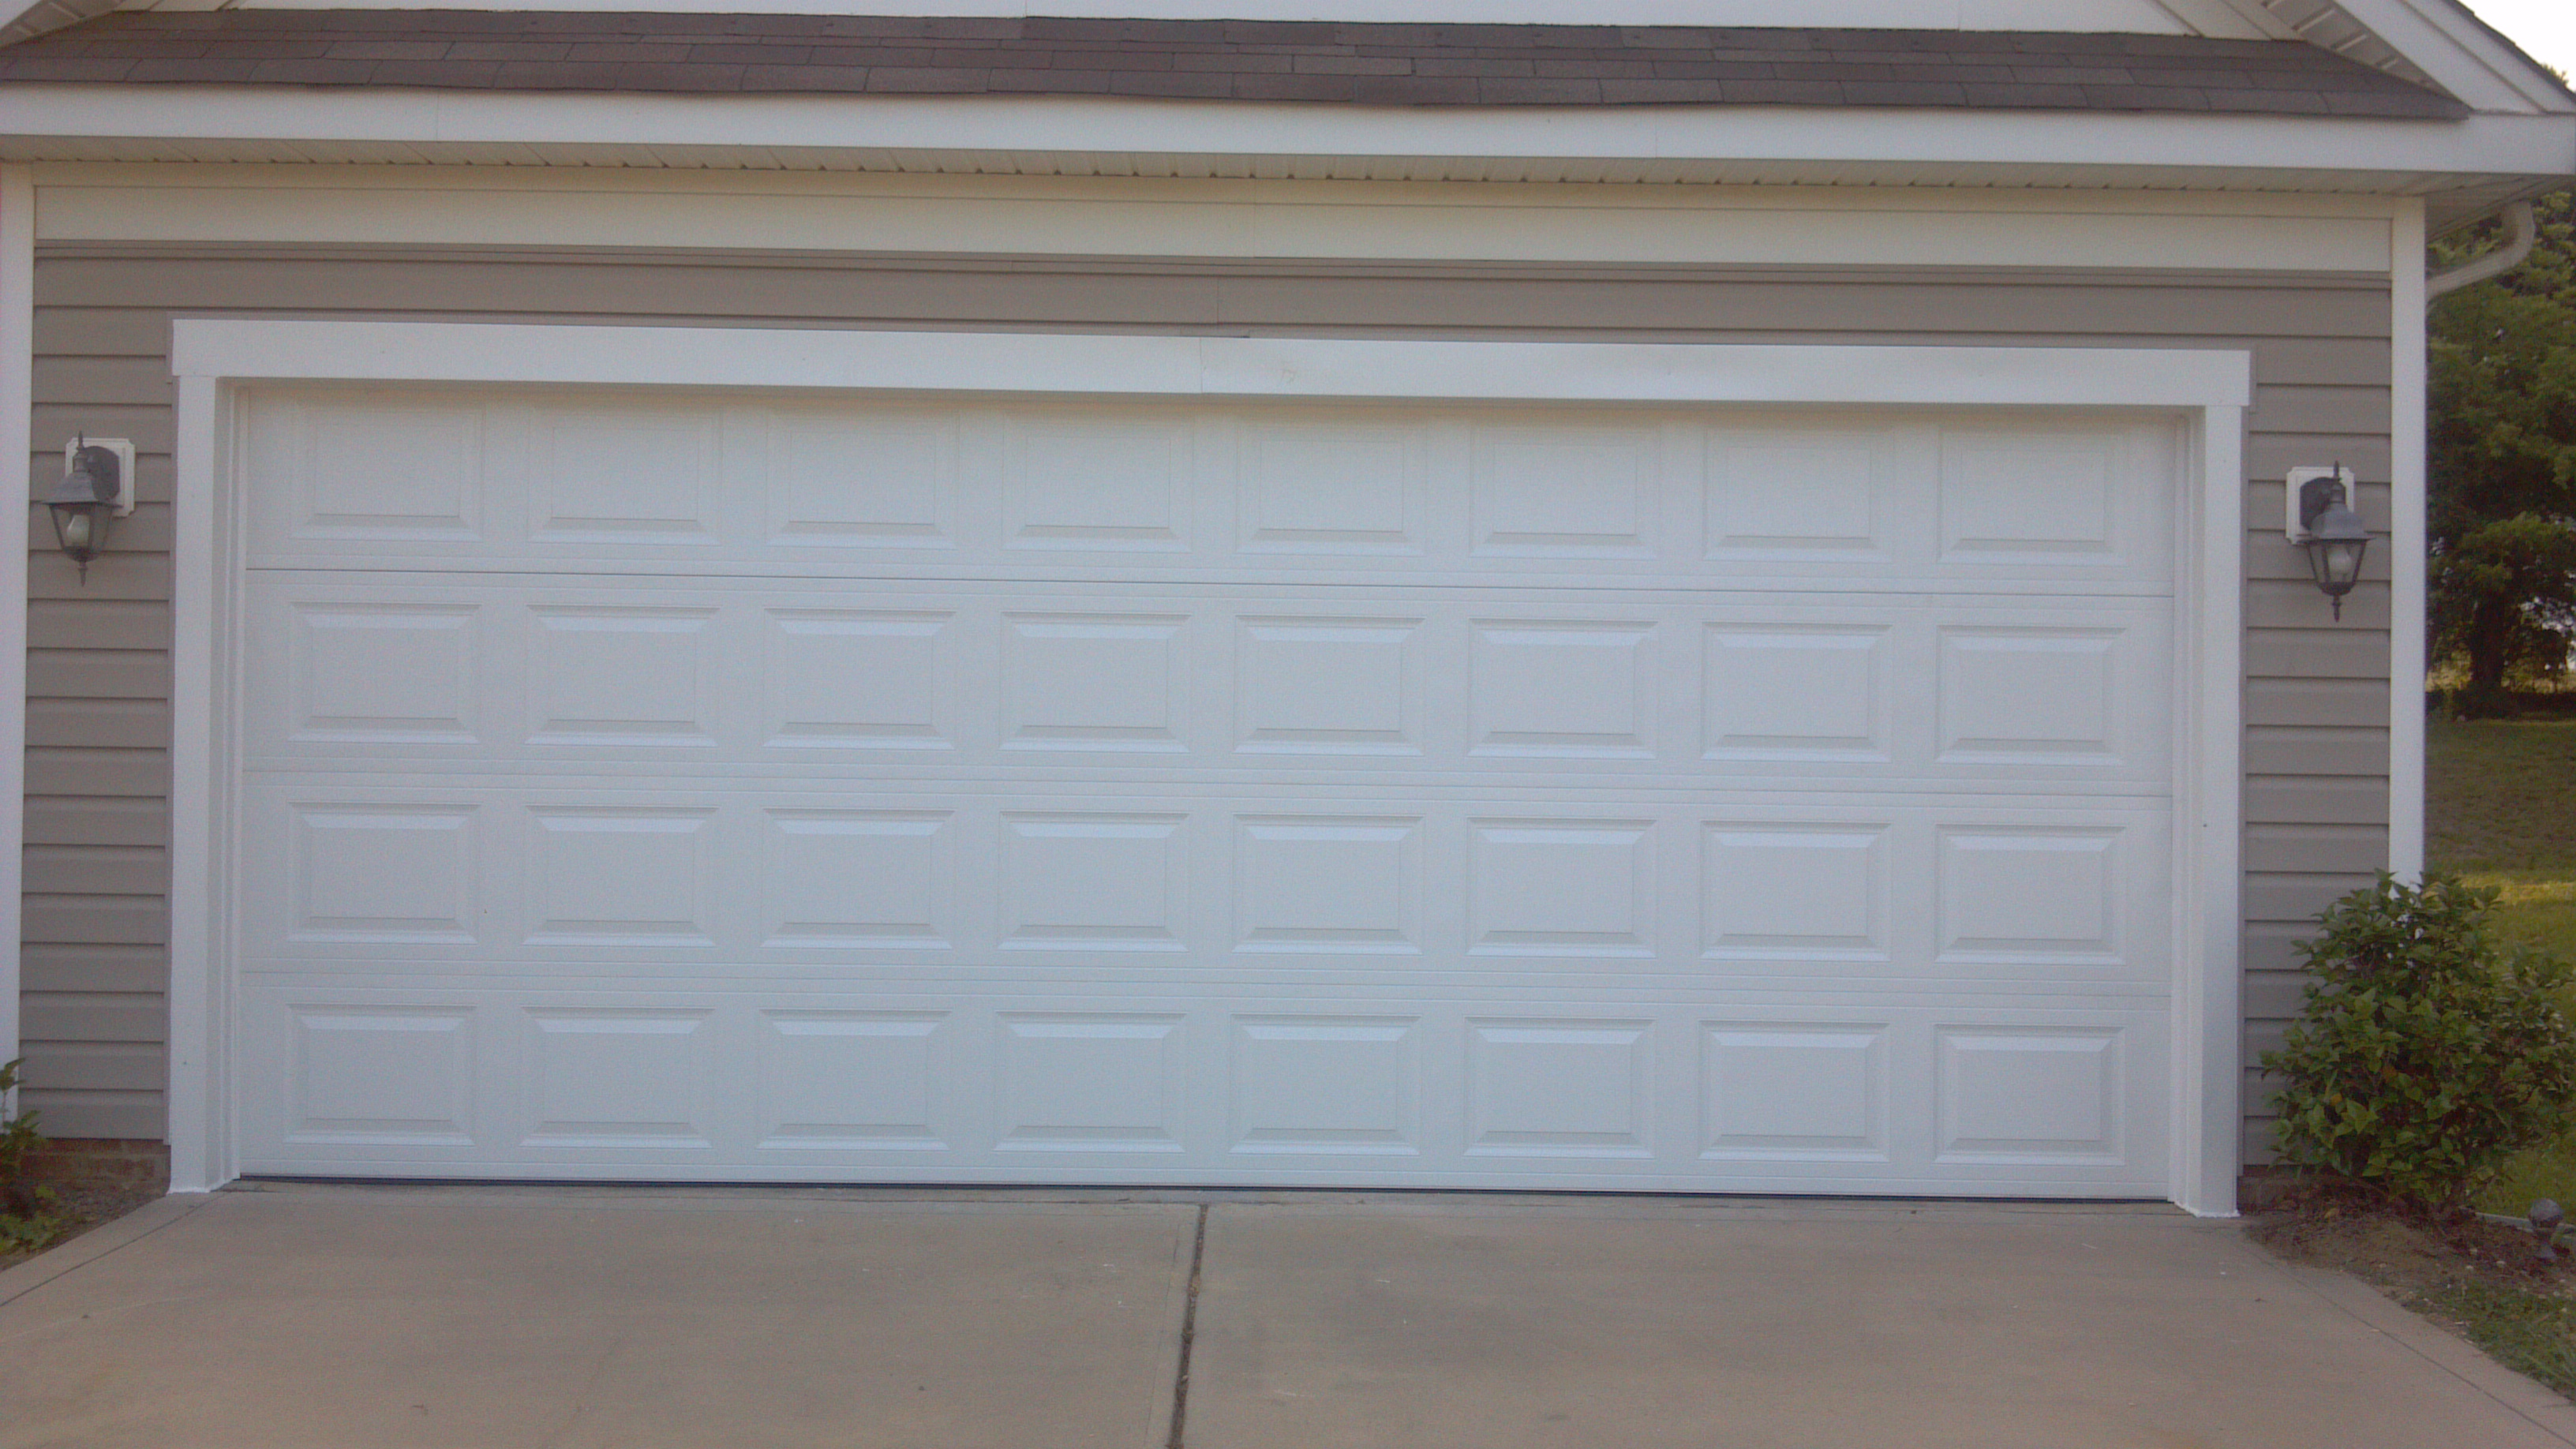 Garage doors double large and beautiful photos photo to for Garage doors